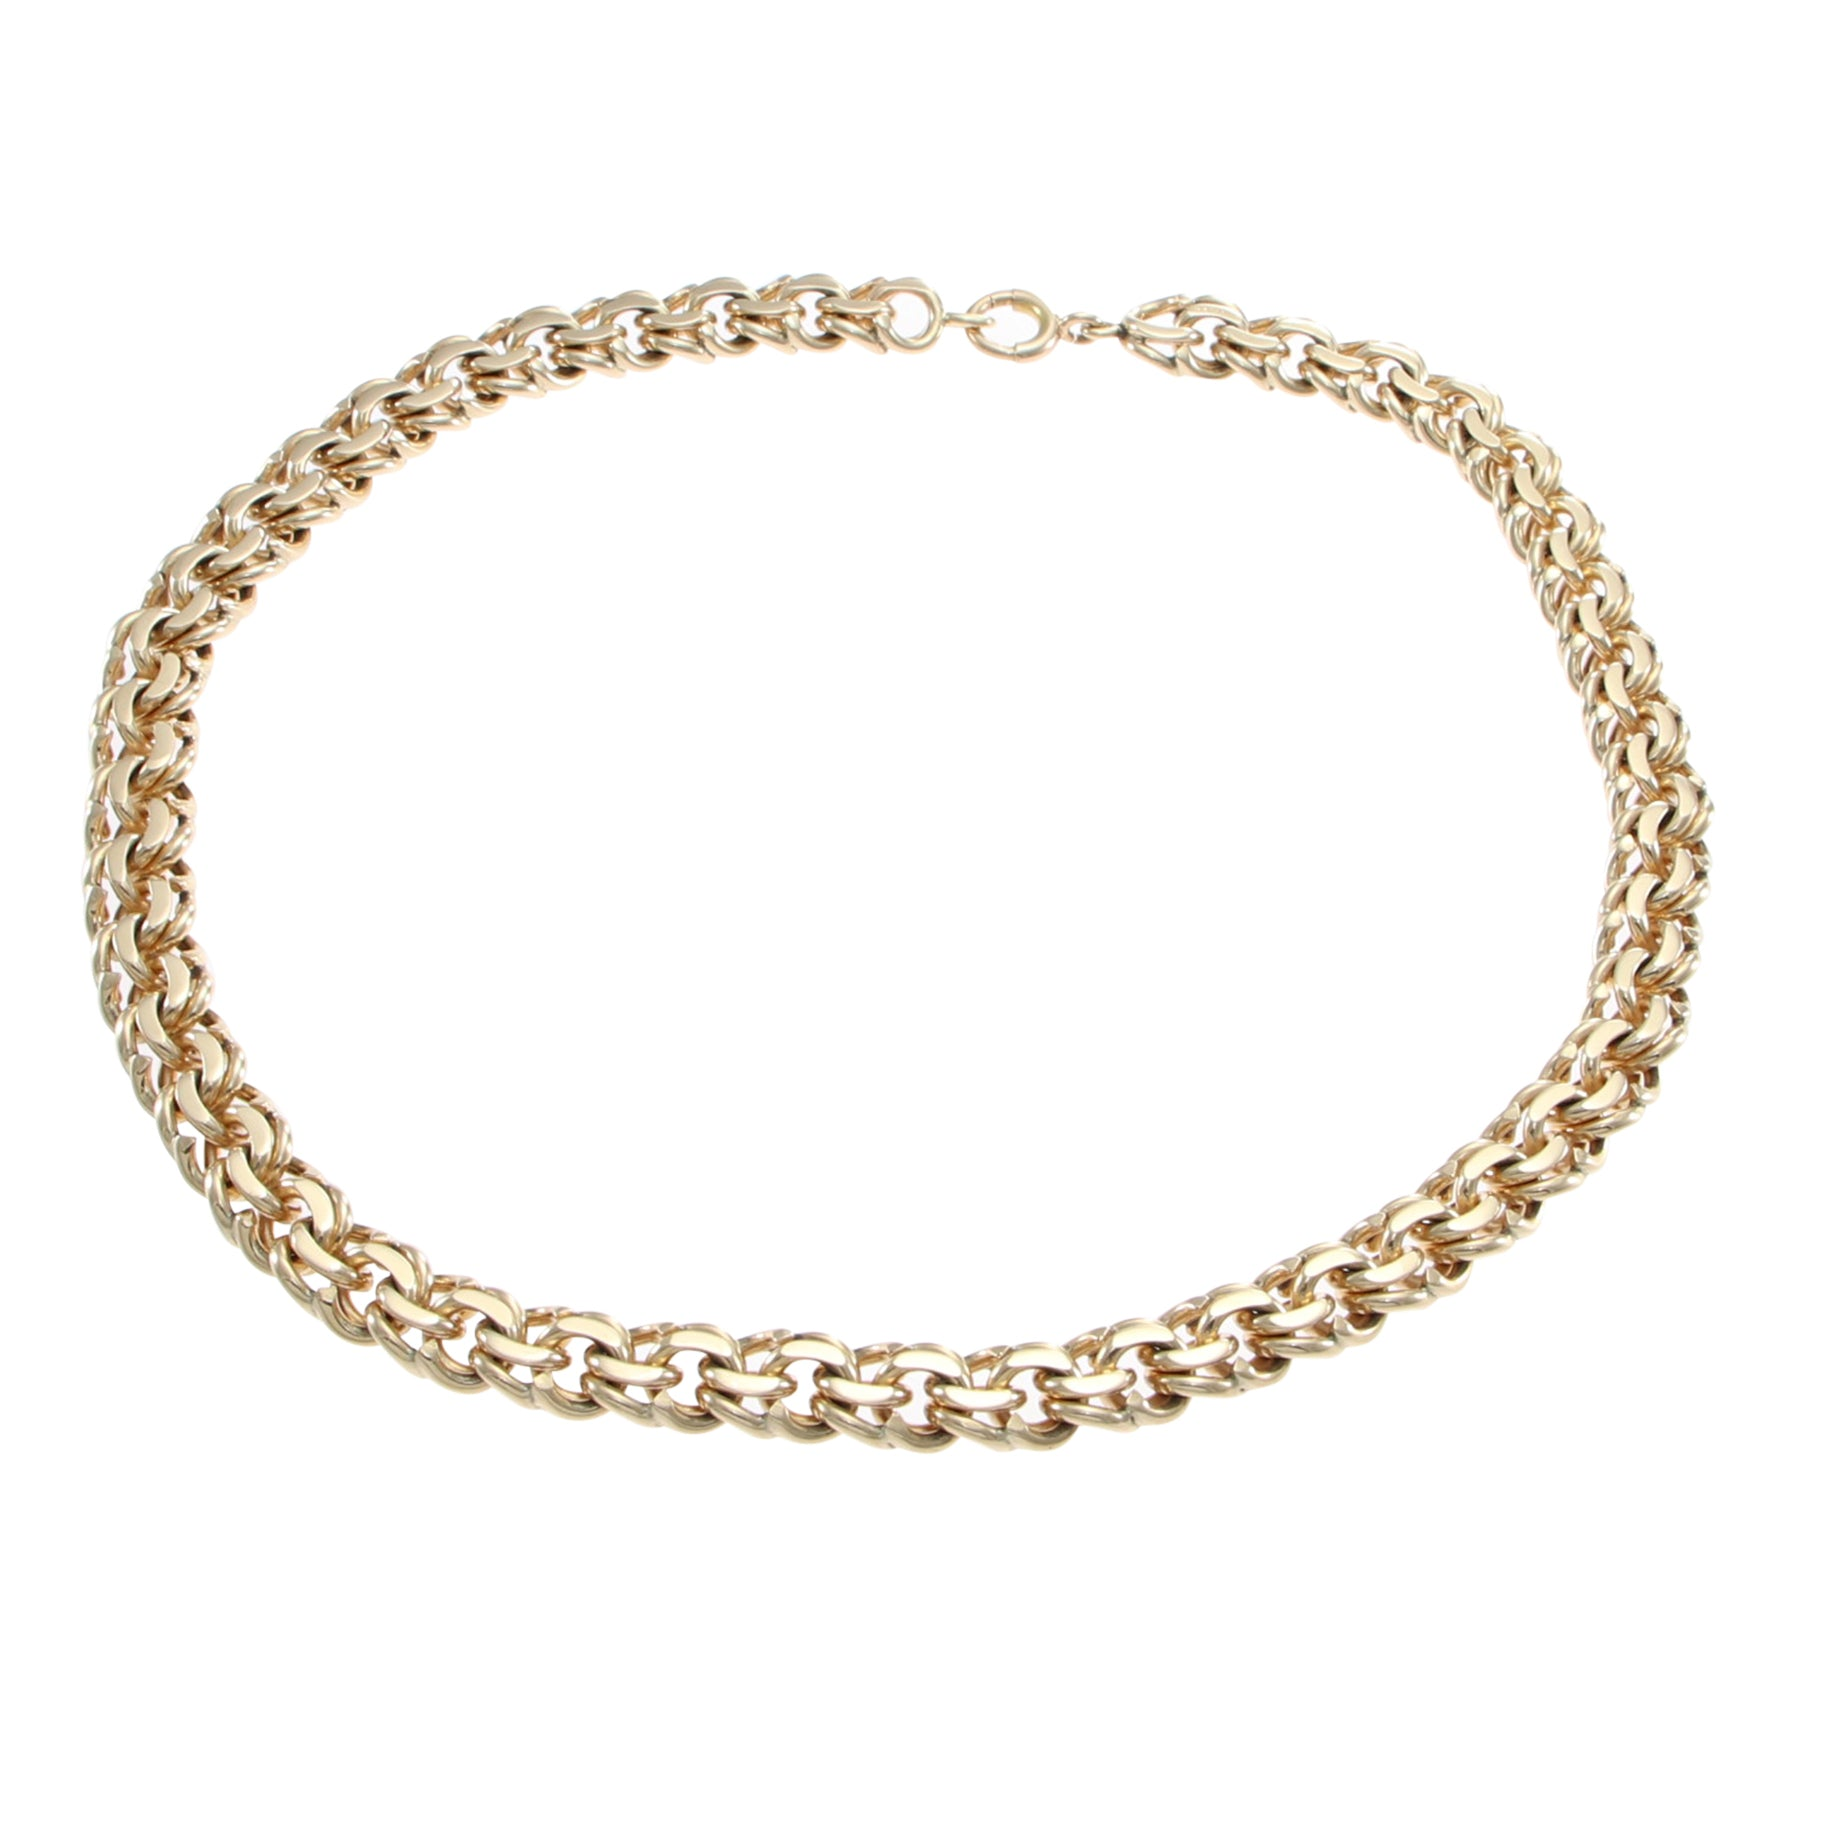 Tiffany Co Double Curb Chain Link Choker Necklace 14k Gold 9mm Wide The Jewelry Gallery Of Oyster Bay